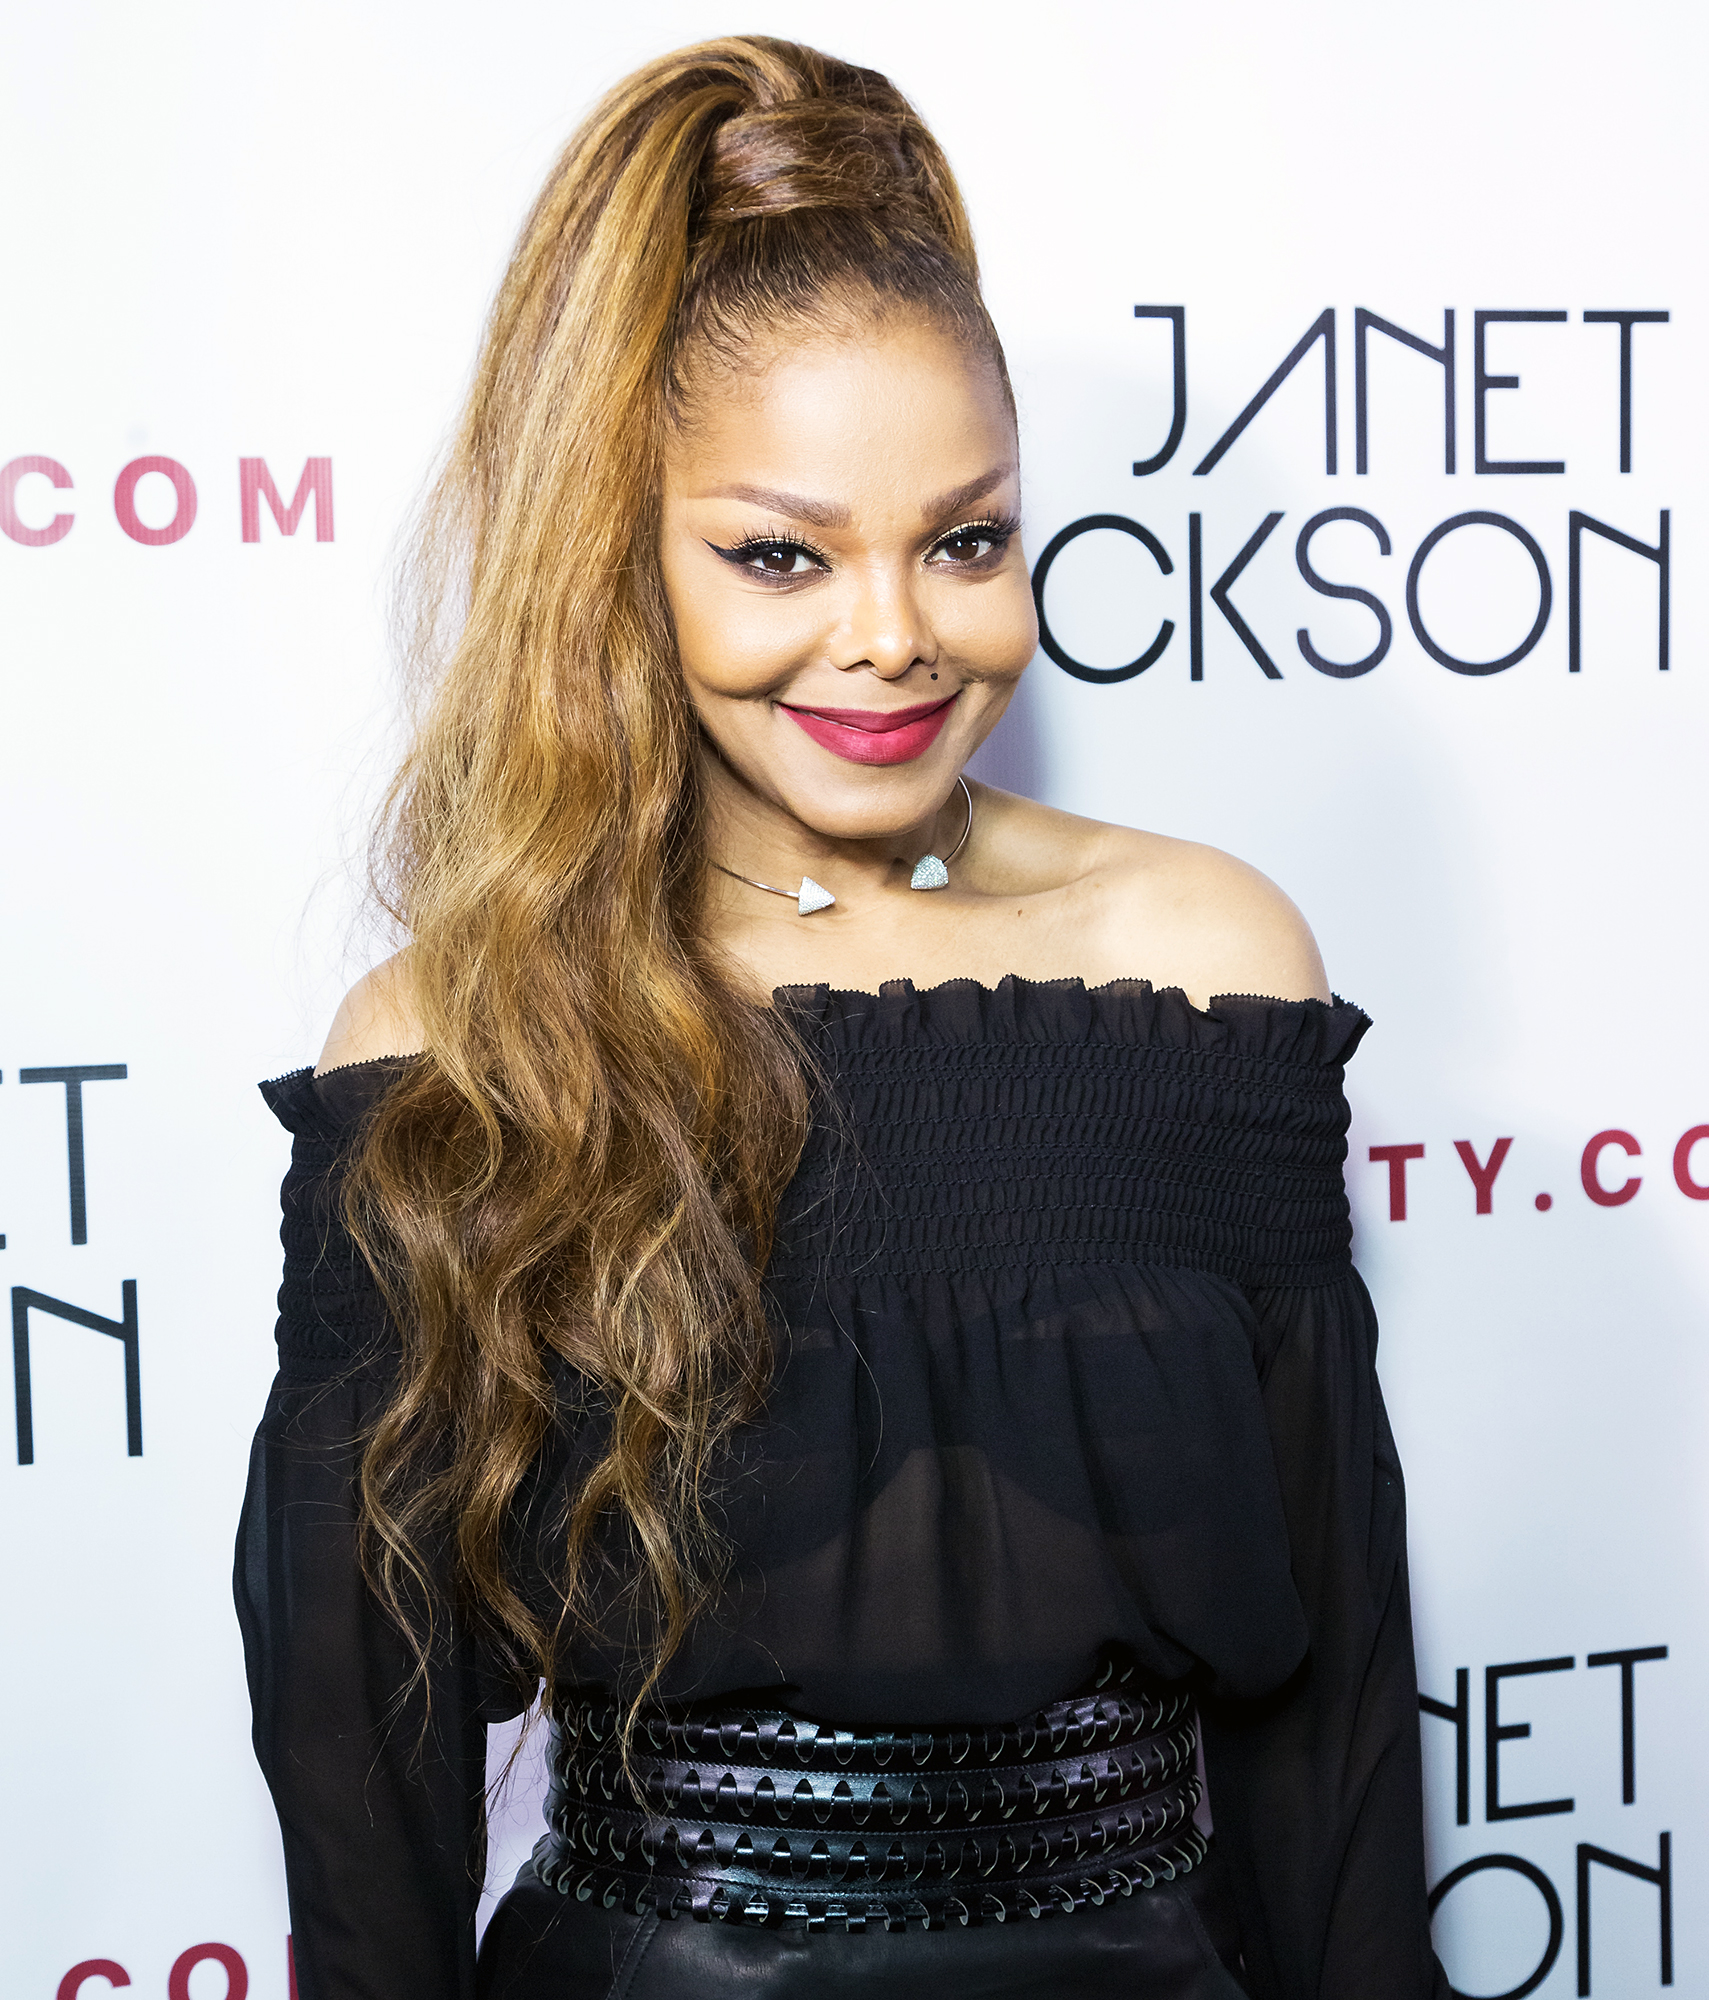 Janet Jackson Calls Police to Check on Toddler Son